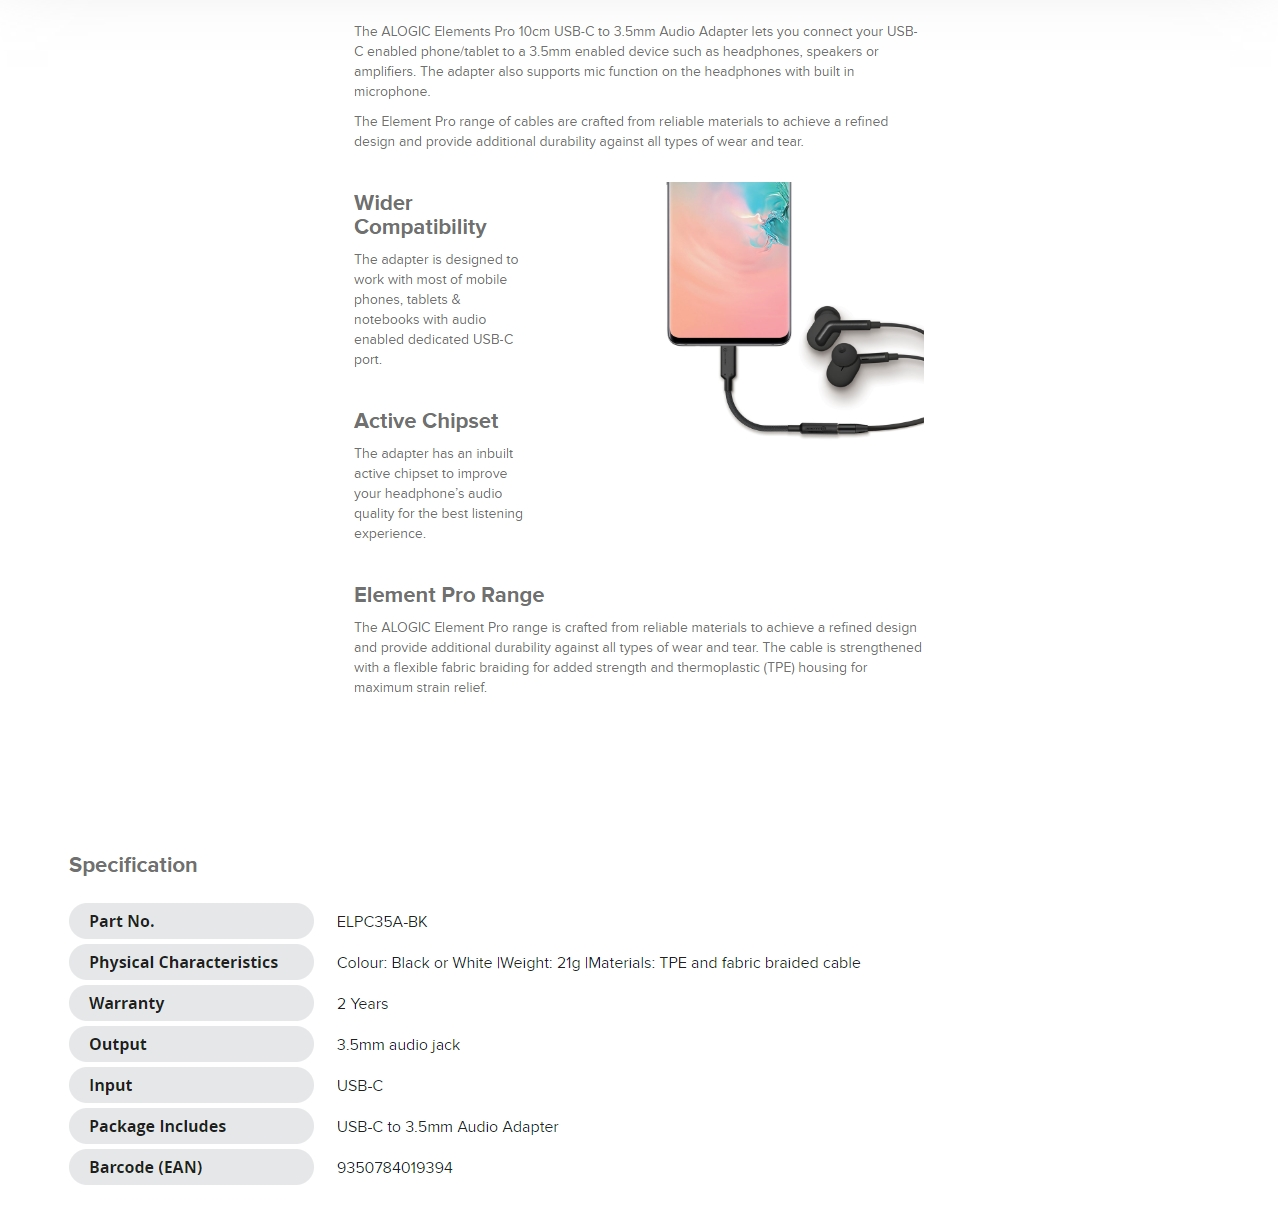 A large marketing image providing additional information about the product ALOGIC Elements PRO USB-C to 3.5mm Audio Adapter - Black - Additional alt info not provided